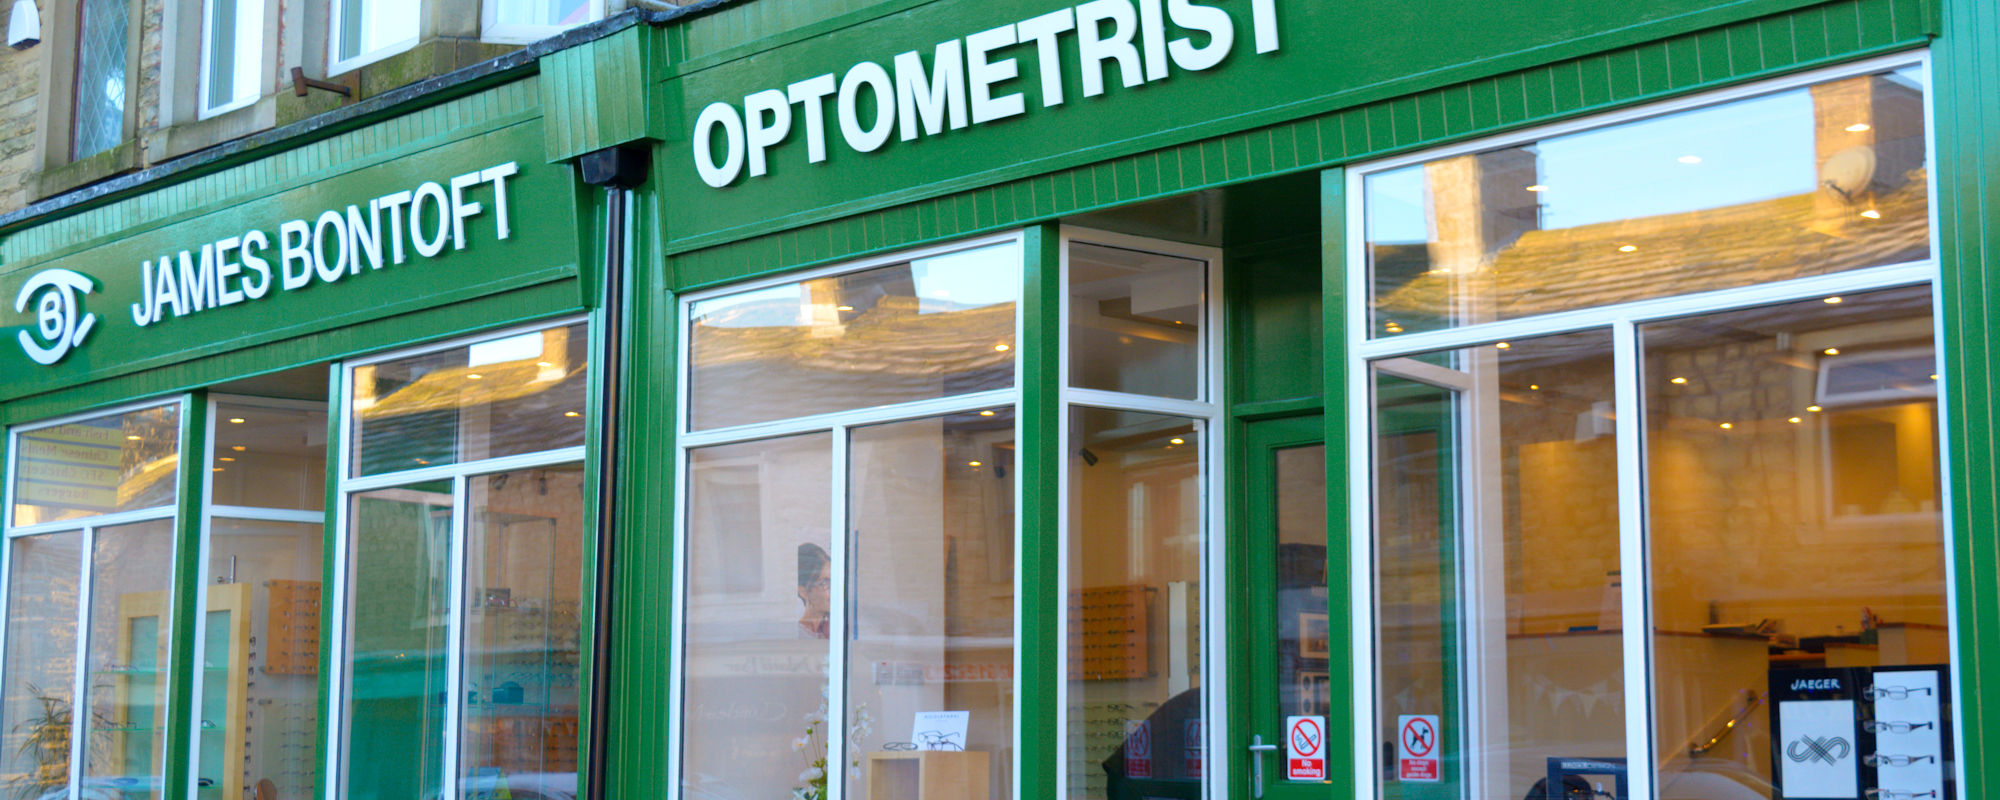 Bracewell's local optician - James Bontoft in Barnoldswick